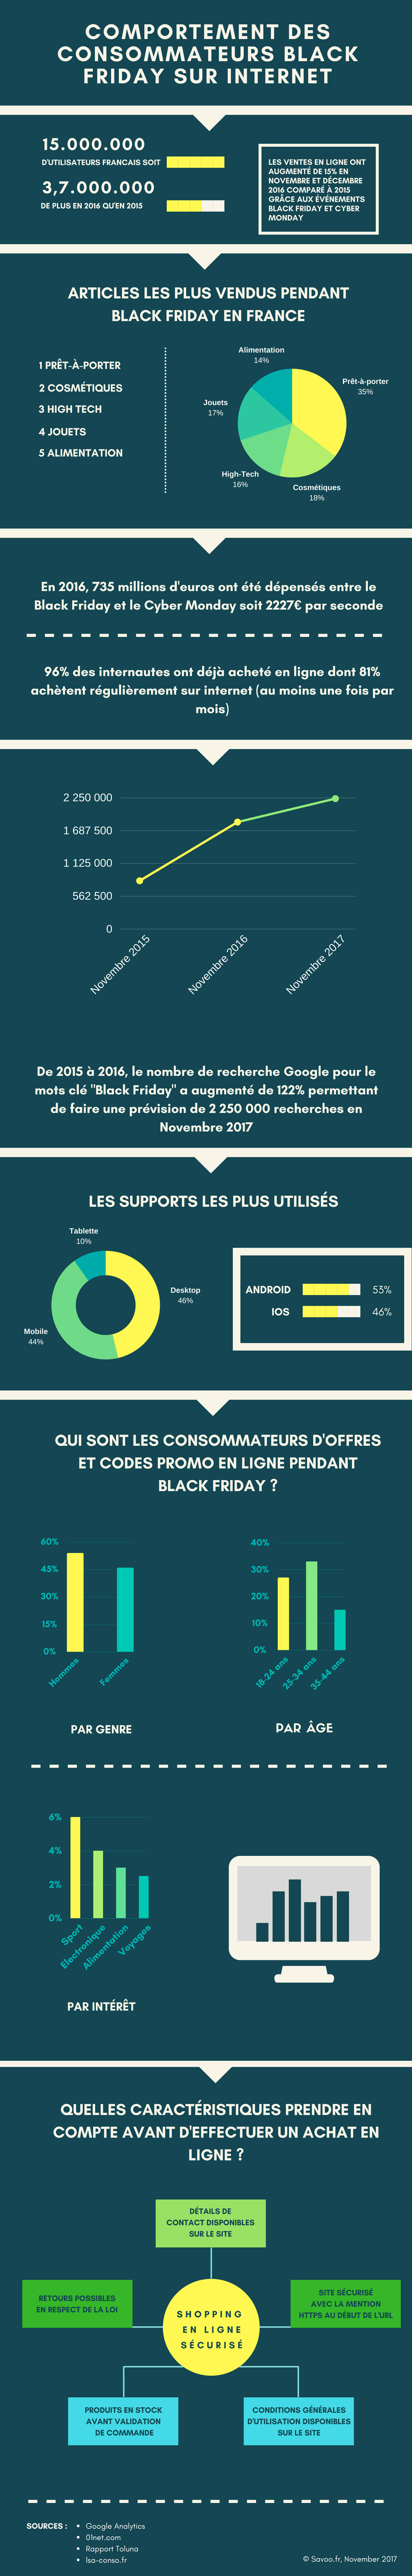 Infographie Black Friday en ligne